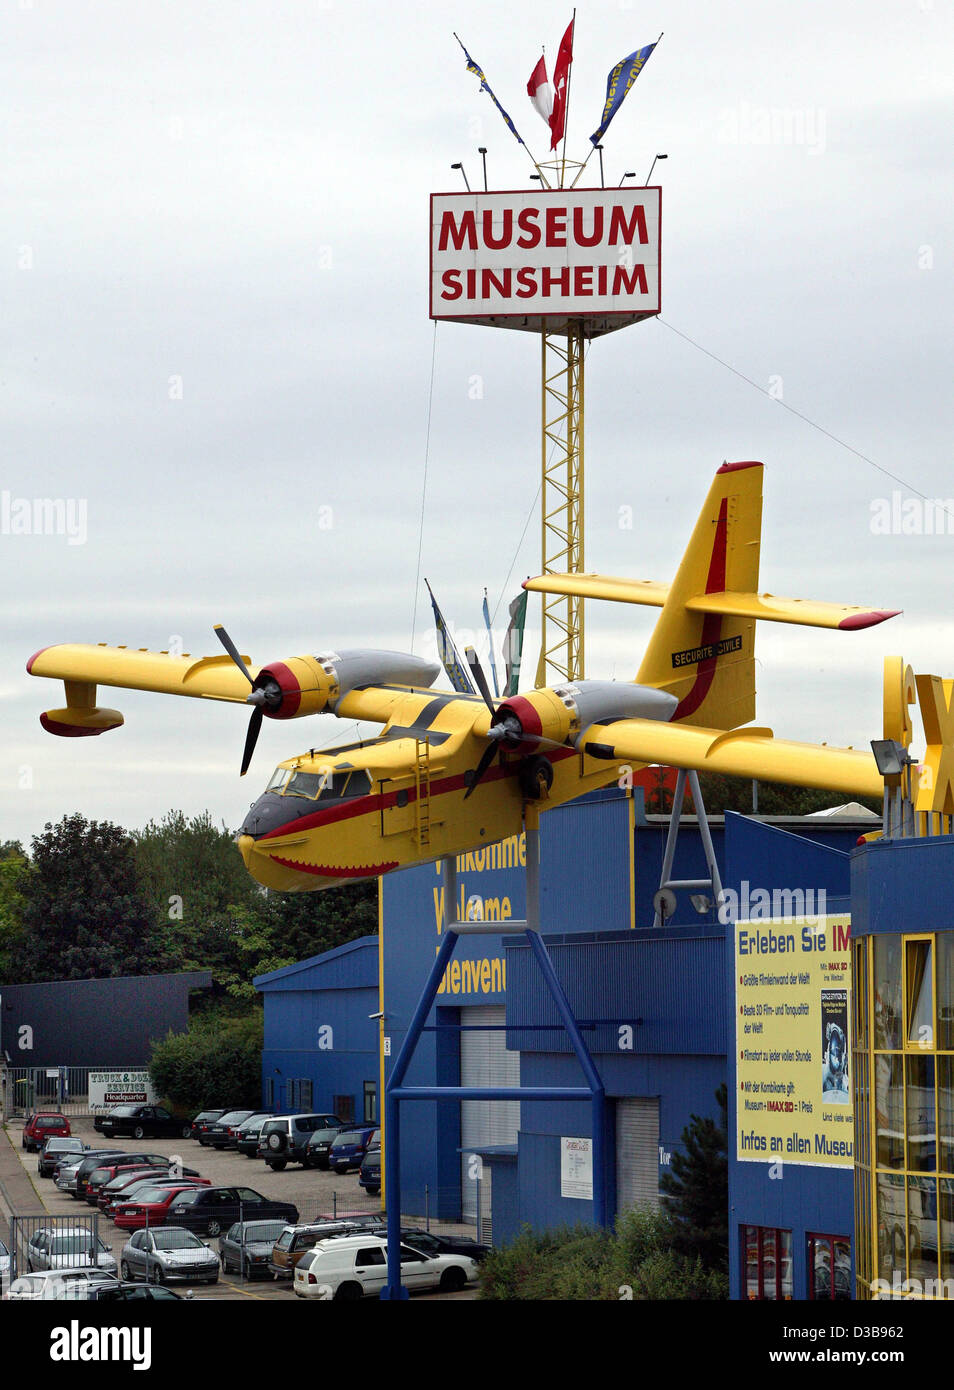 (dpa) - The picture shows a Canadair CL-215 Amphibic fire-fighting plane in the entrance area of the Automobile - Stock Image